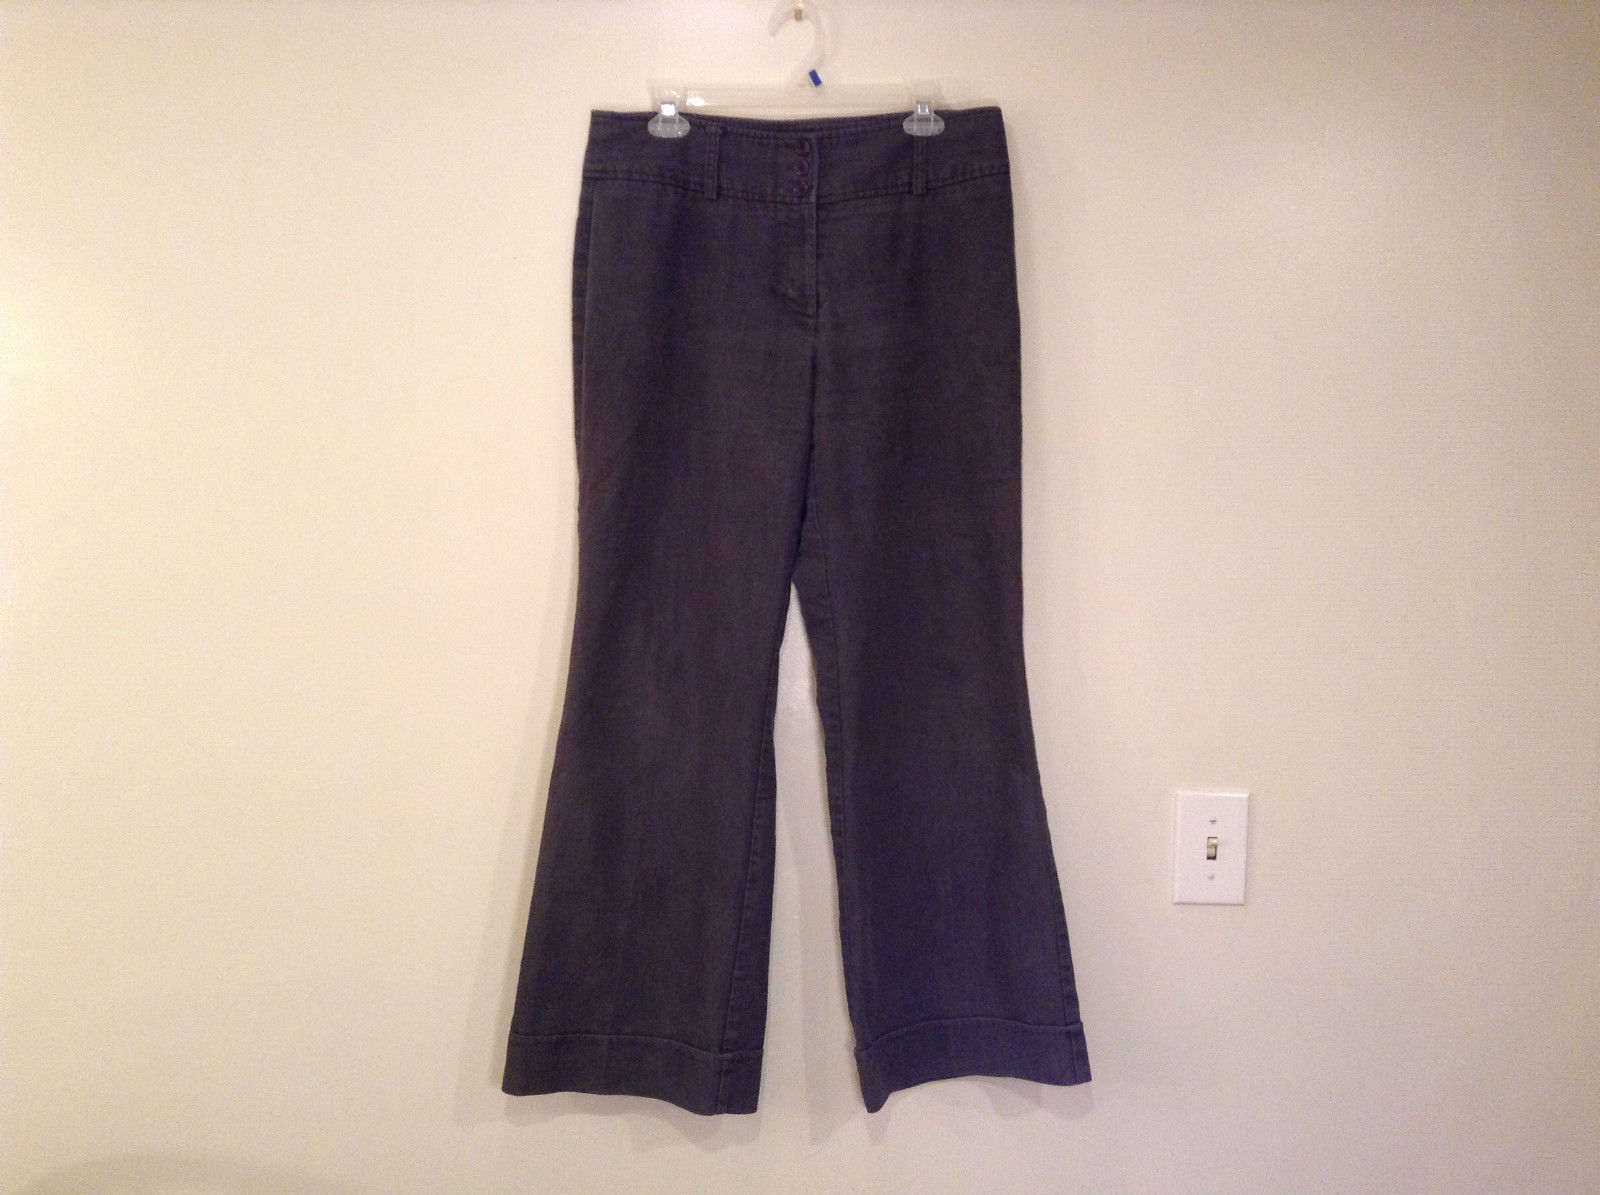 Ingredients Size 12 Gray Casual Pants Cuffed Pant Legs 3 Buttons Zipper Closure